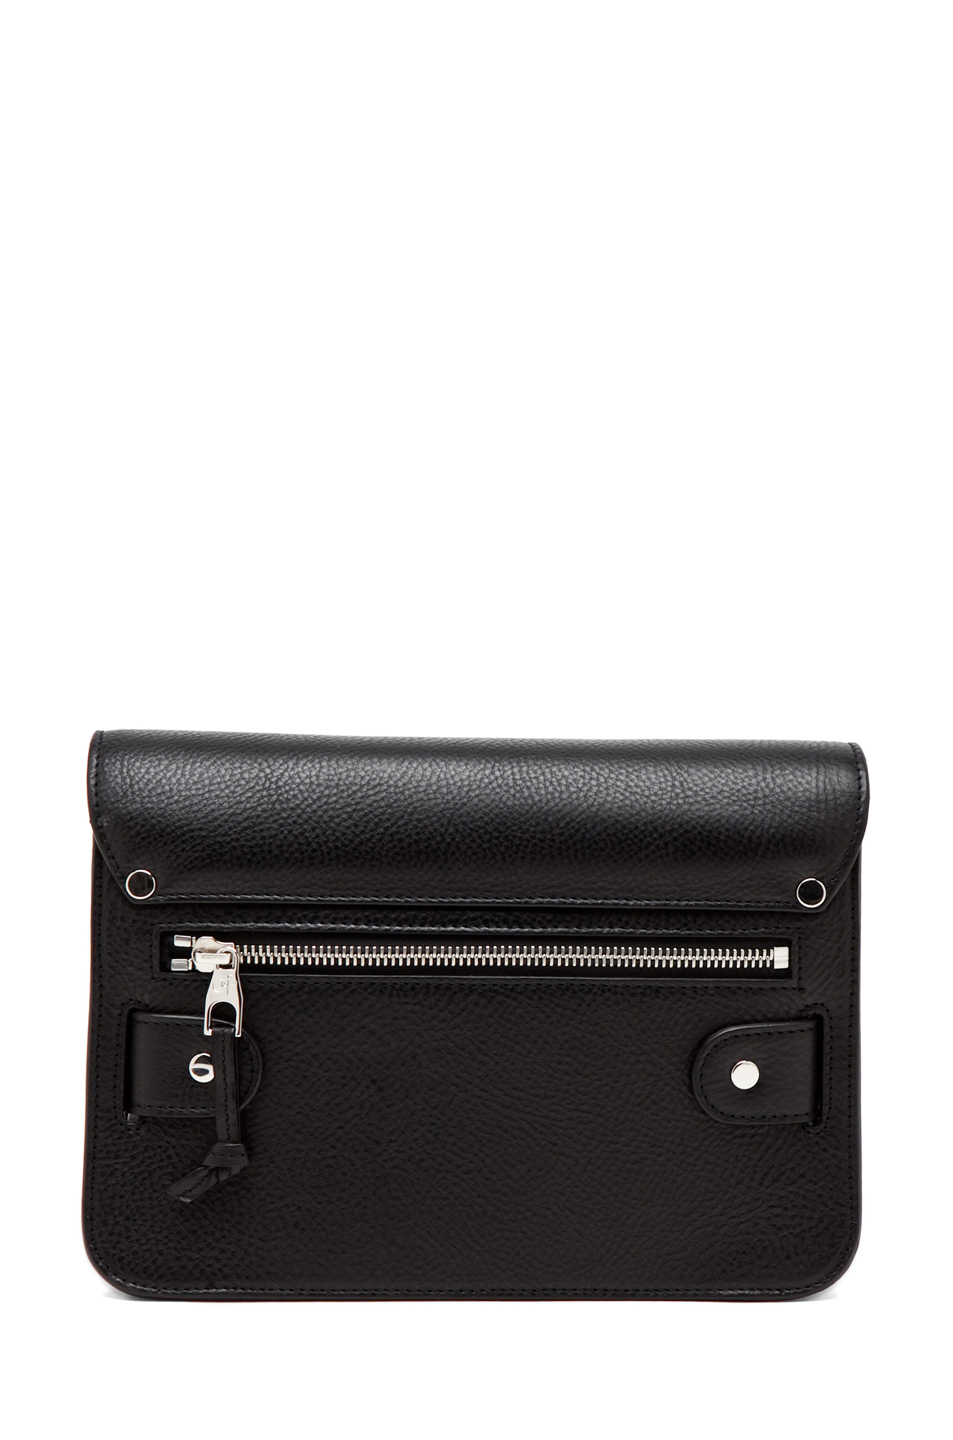 Proenza Schouler | Mini PS11 Classic Smooth Leather Bag in Black